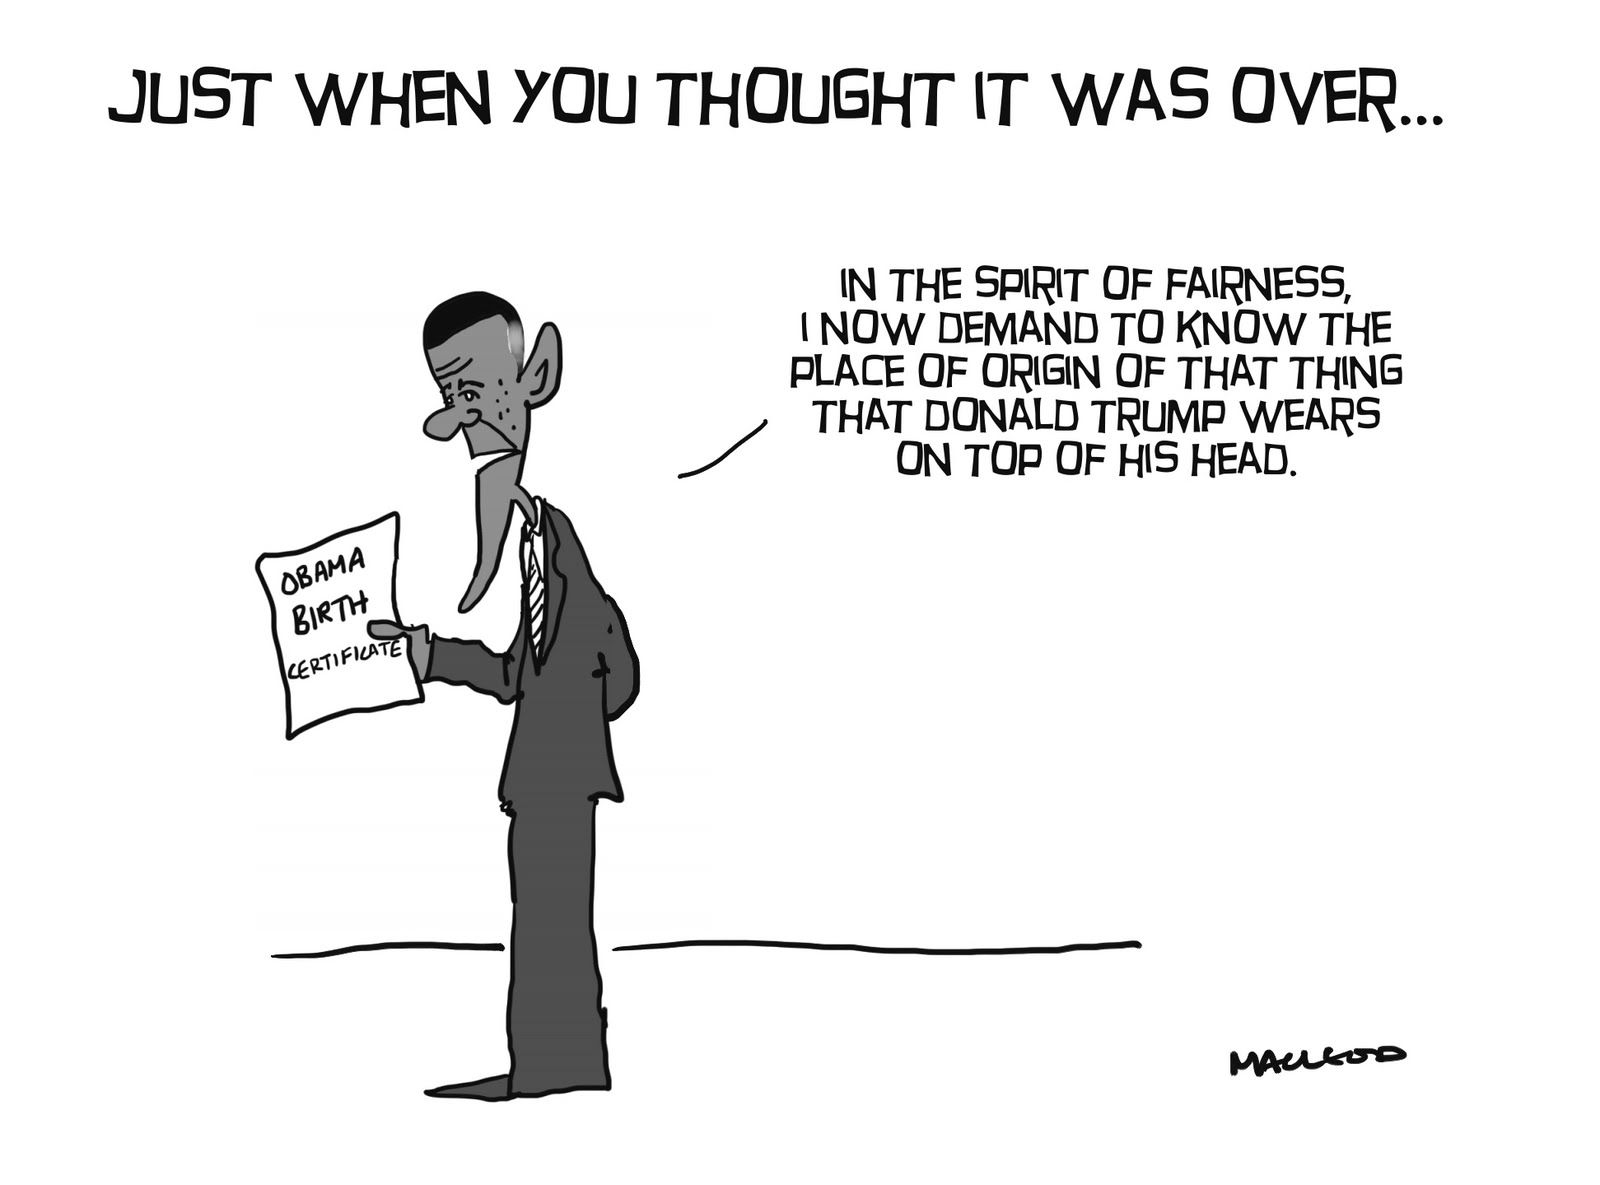 Macleod Cartoons Obama Releases Birth Certificate